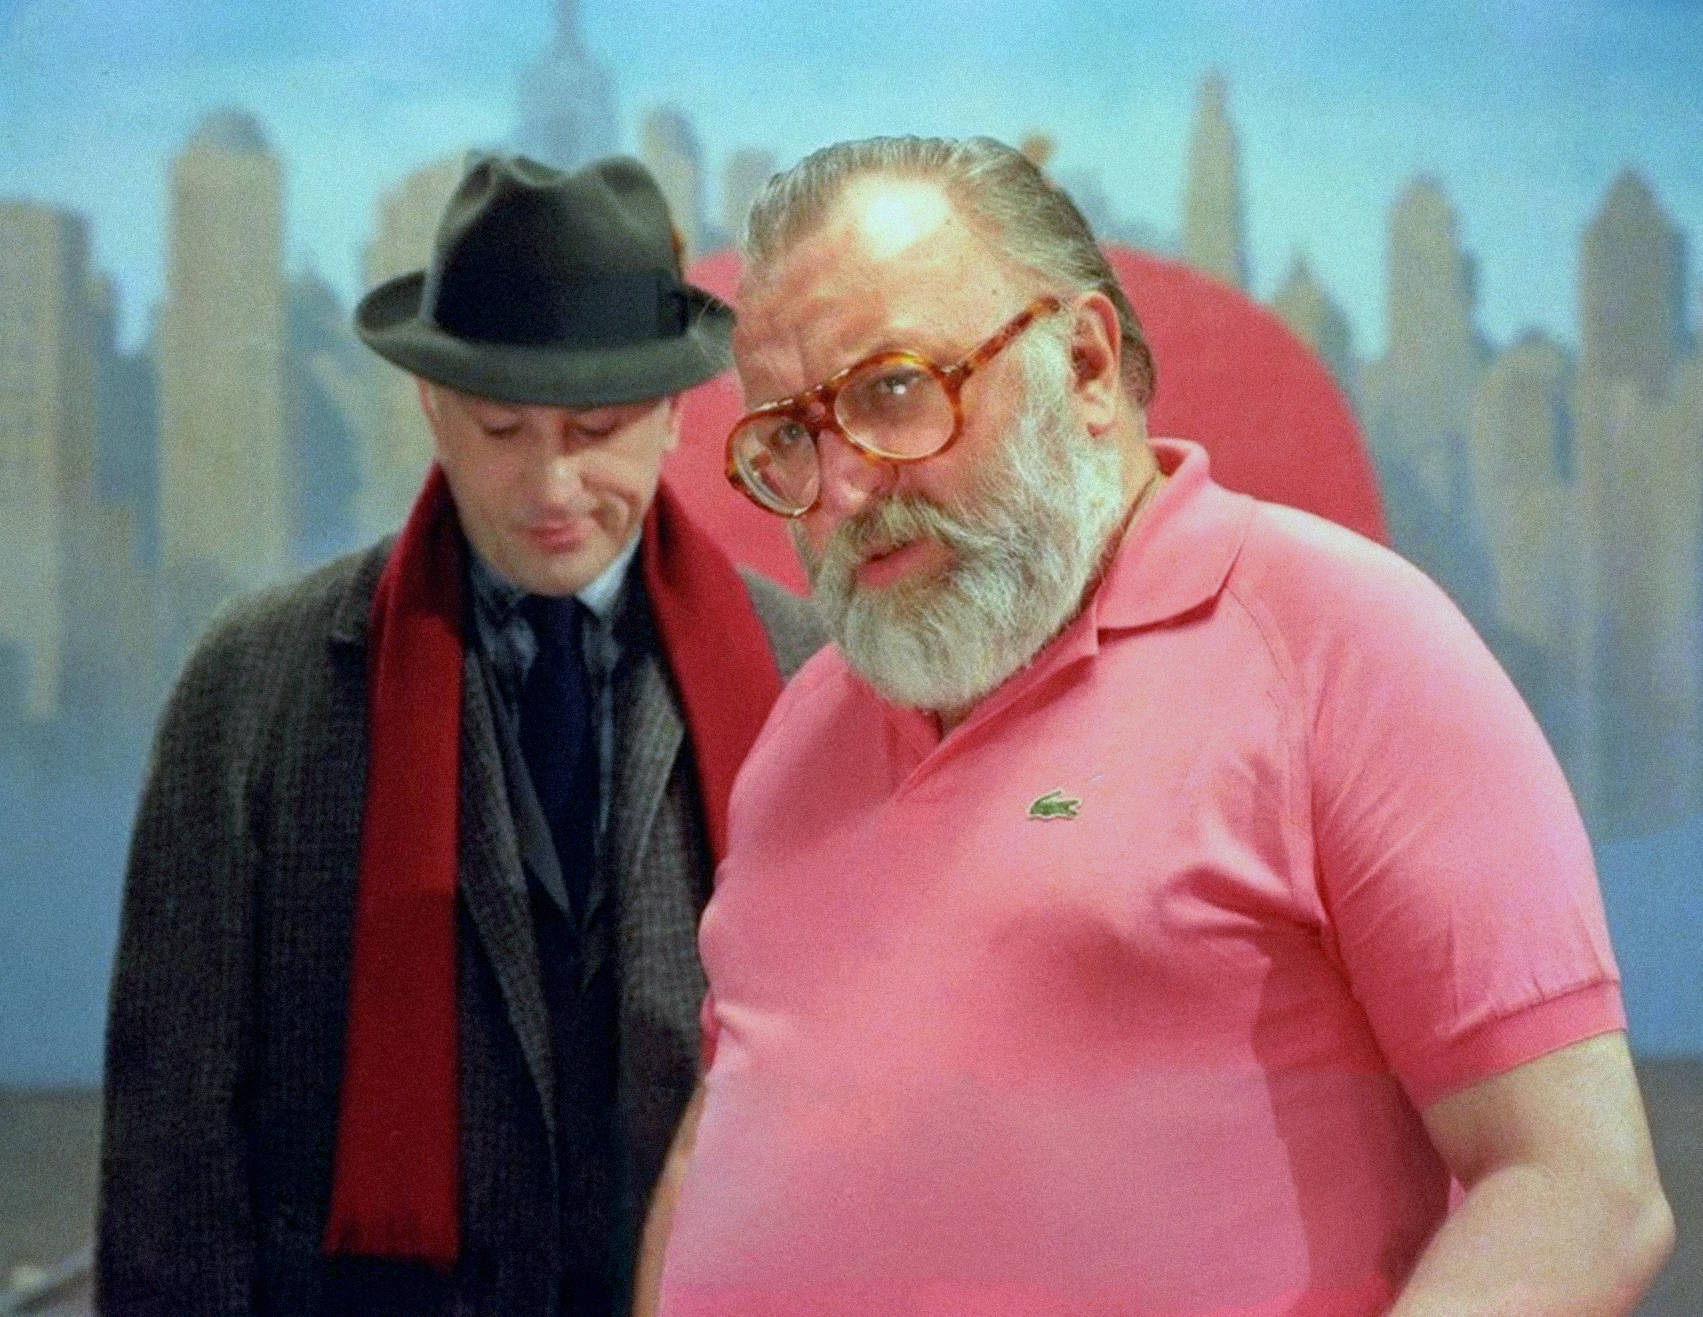 Sergio Leone and Robert De Niro The Phantom: Bruce Campbell Almost Starred, And More You Didn't Know About The Film